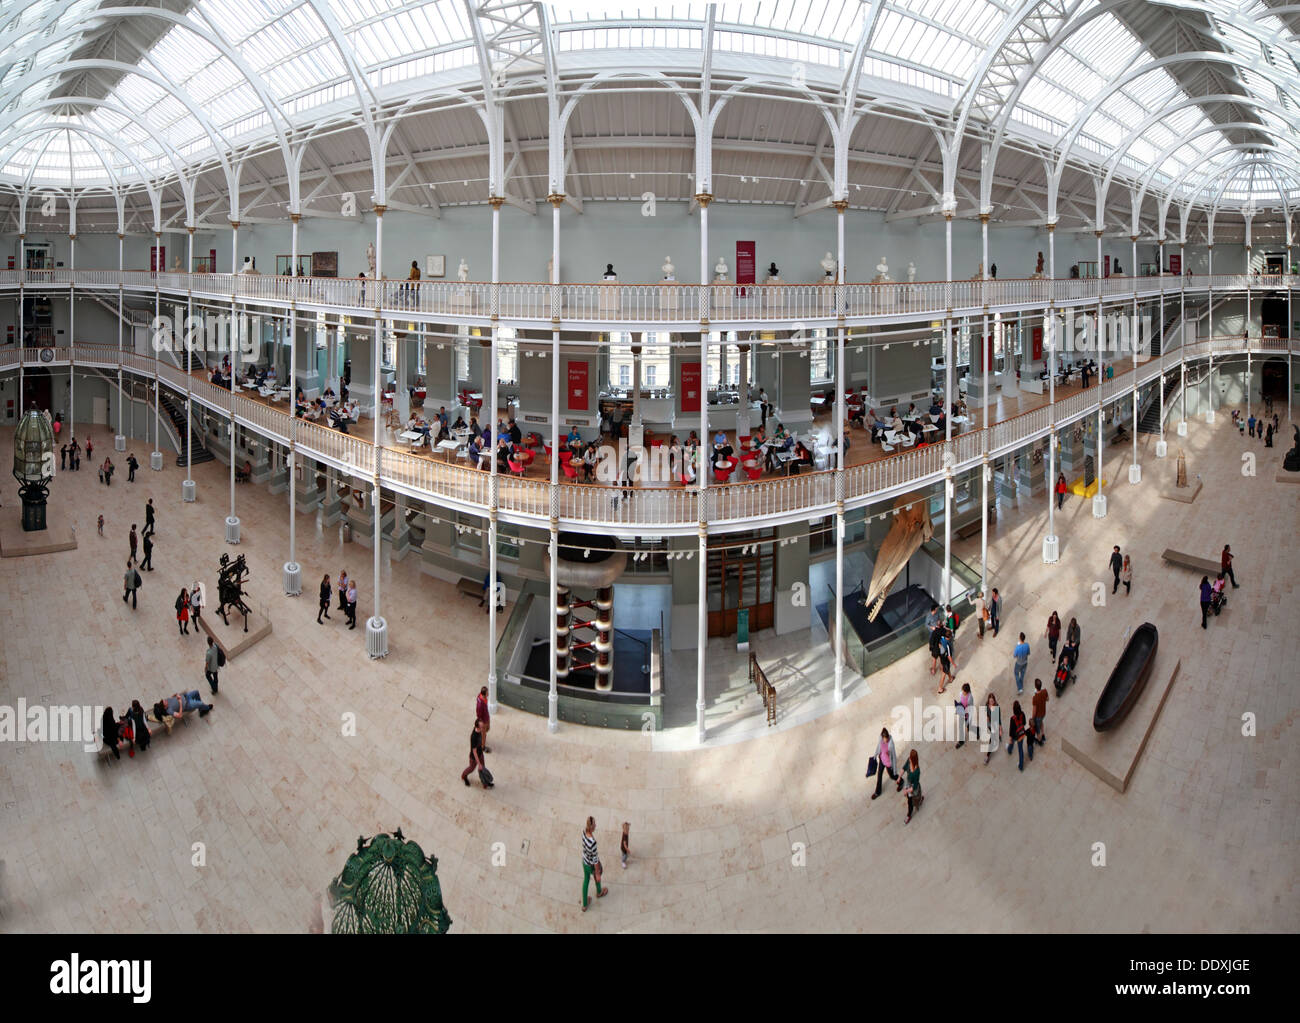 Wide shot of the National Museum of Scotland interior, Chambers St Edinburgh city, Scotland UK EH1 1JF - Stock Image